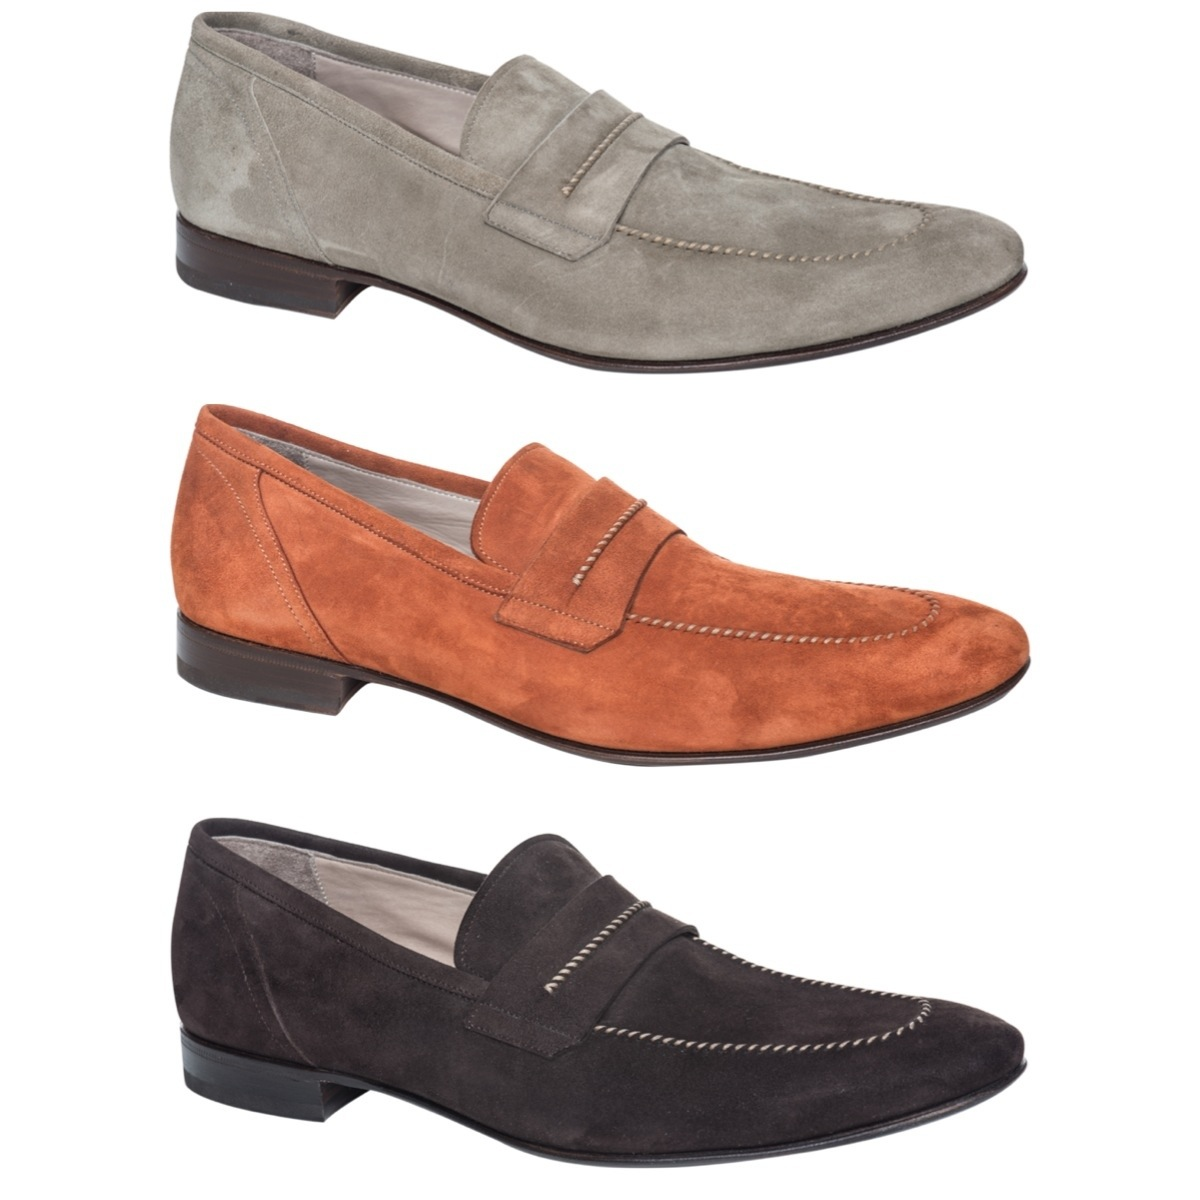 Franceschetti loafers SS2013 Collection